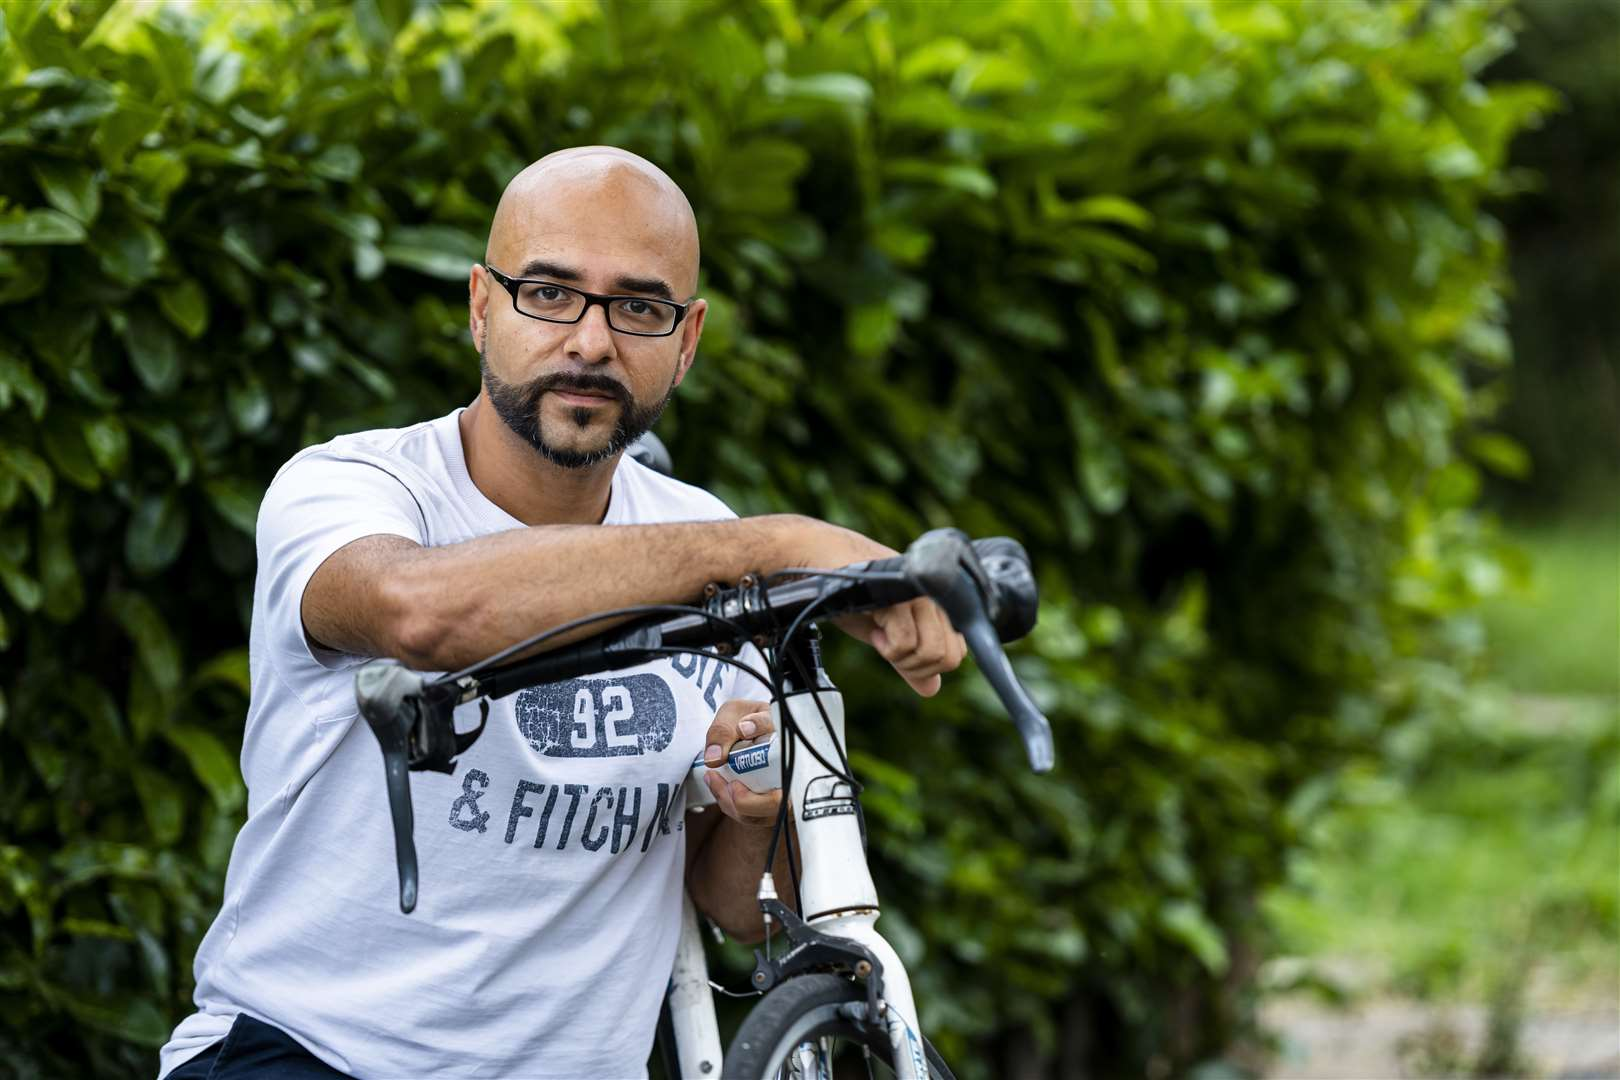 Omar Terywall, founder of the Stolen Bikes in Cambridge Facebook group. Picture: Keith Heppell